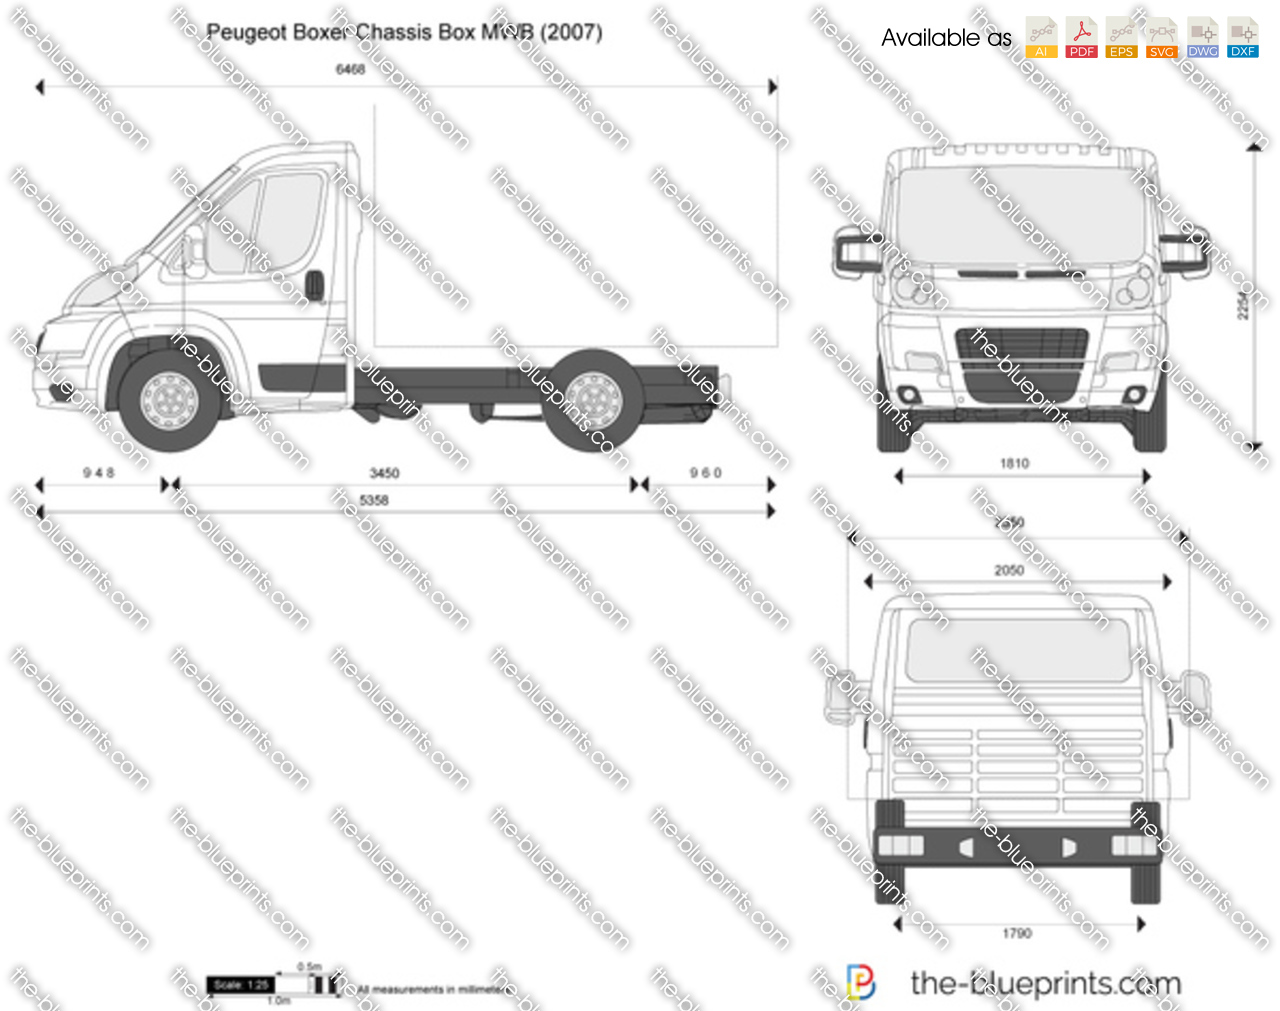 the vector drawing peugeot boxer chassis box mwb. Black Bedroom Furniture Sets. Home Design Ideas